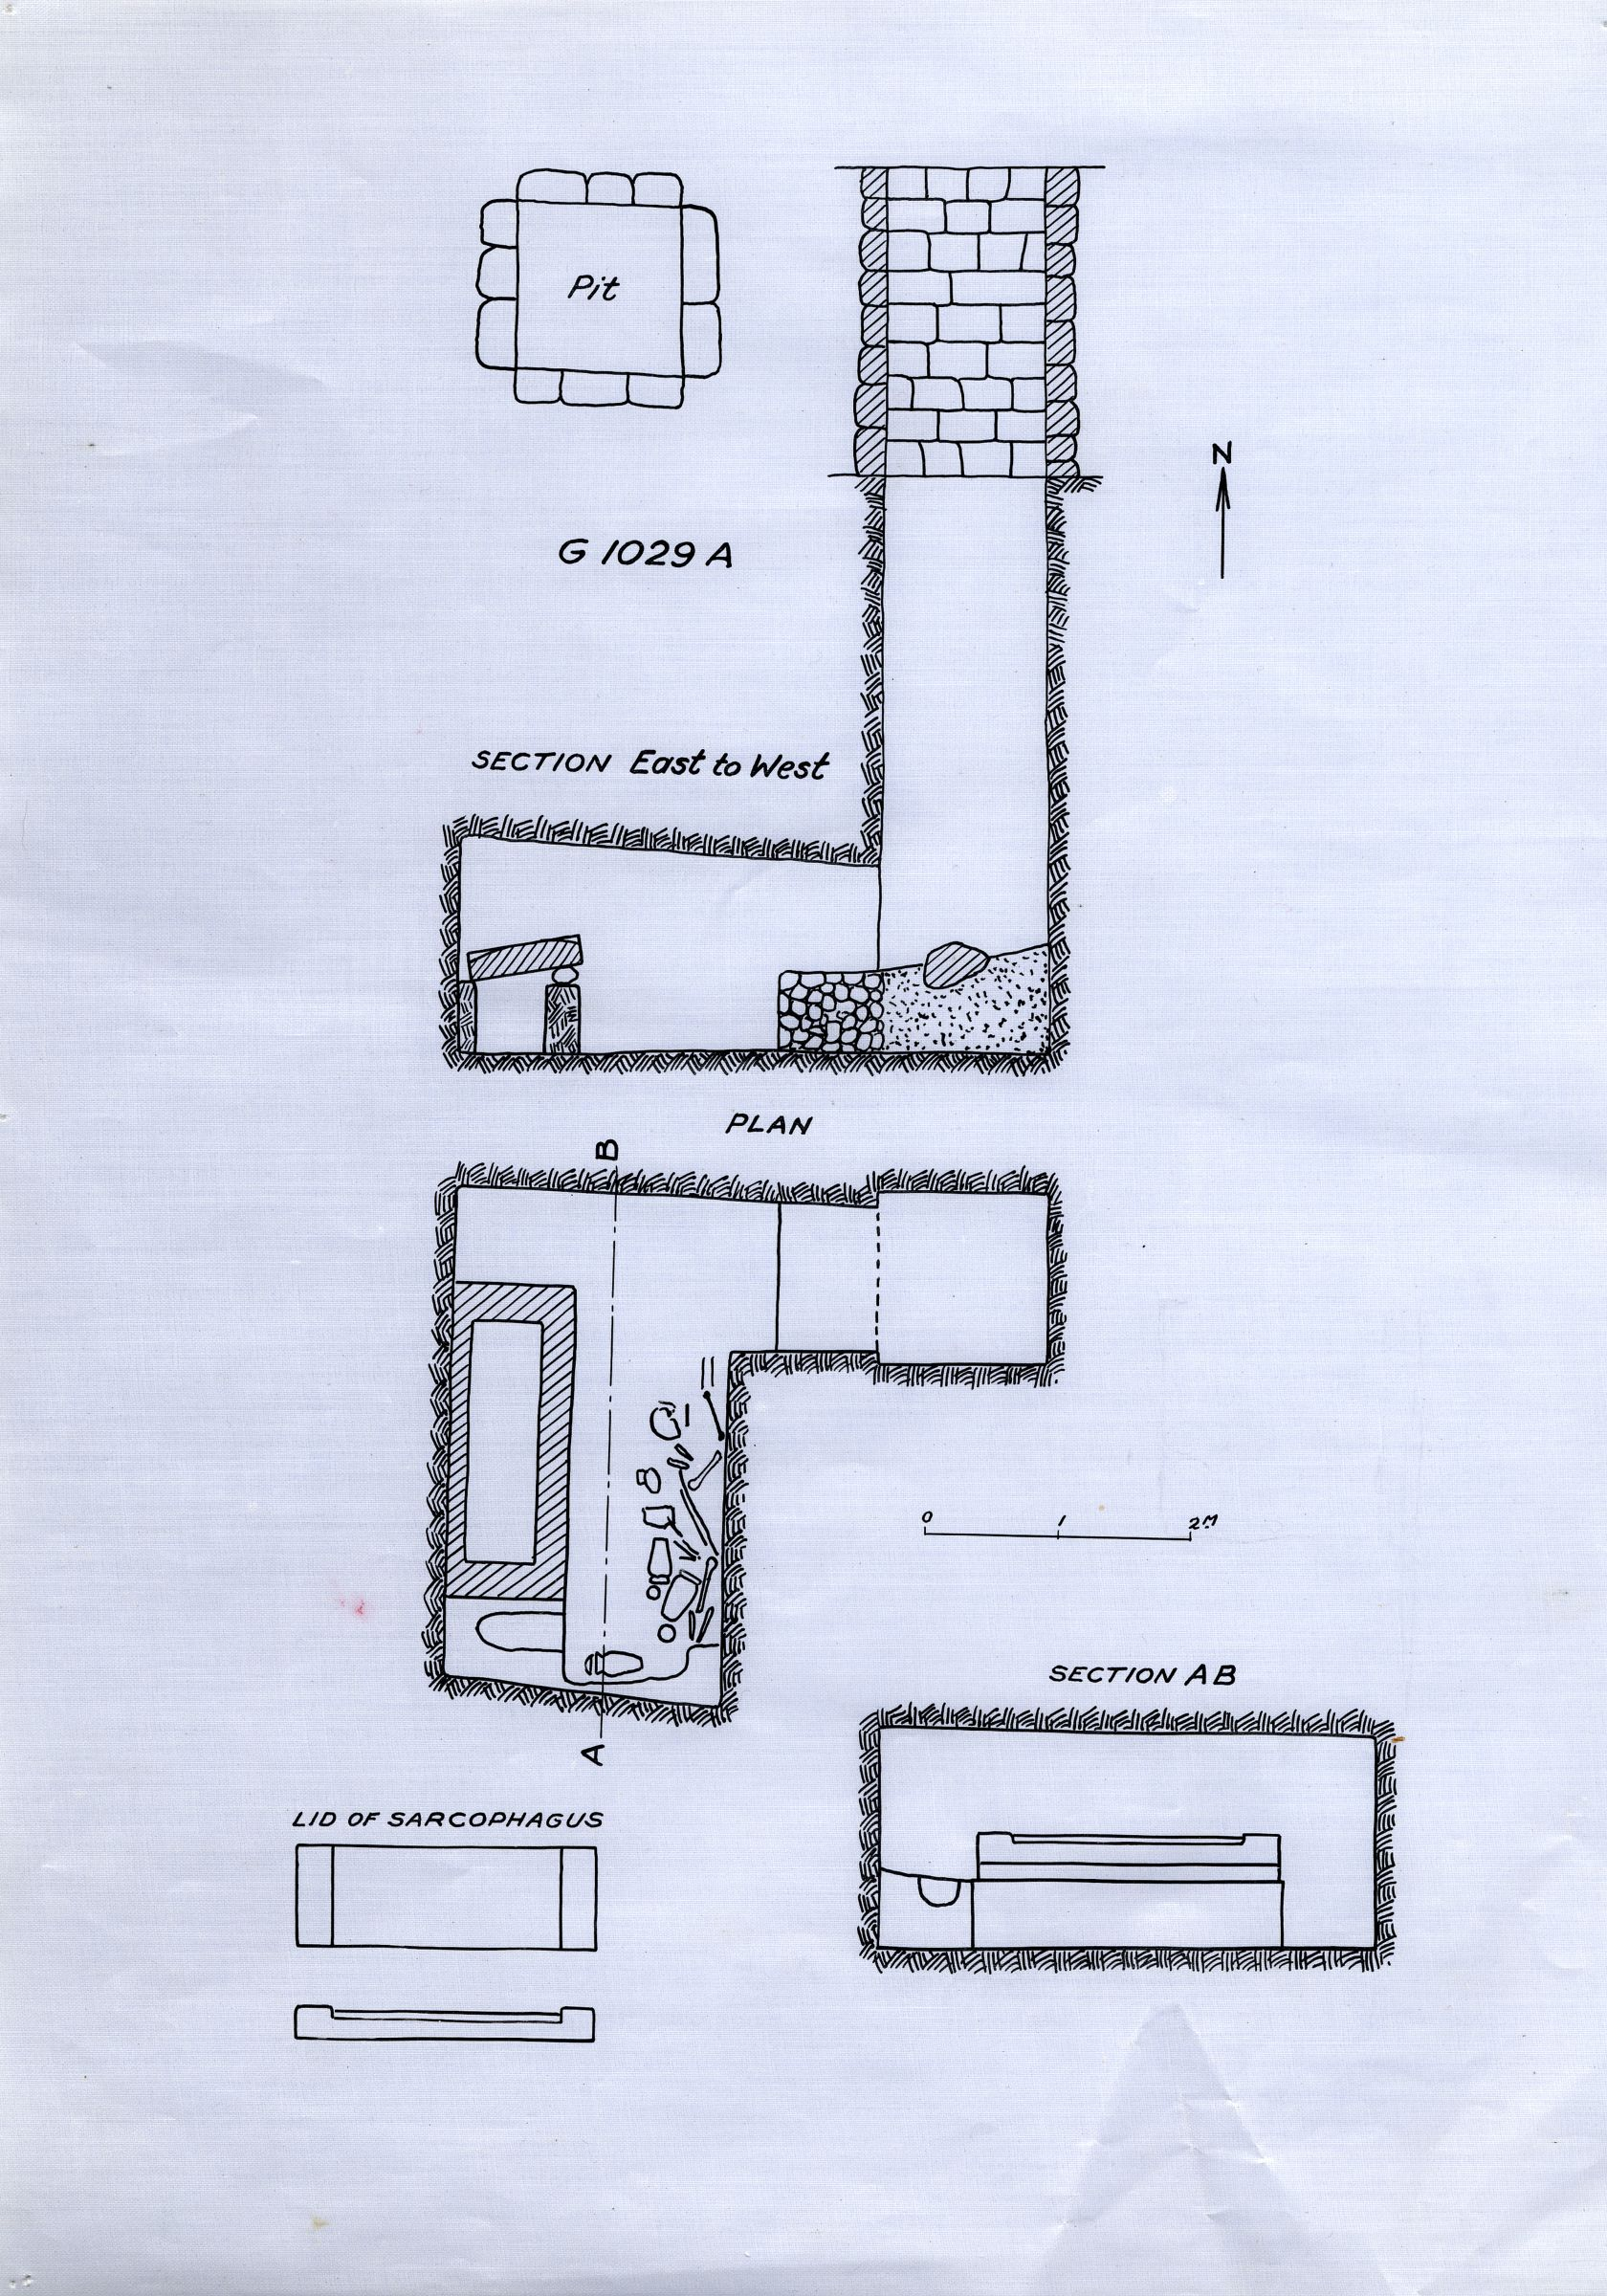 Maps and plans: G 1029, Shaft A